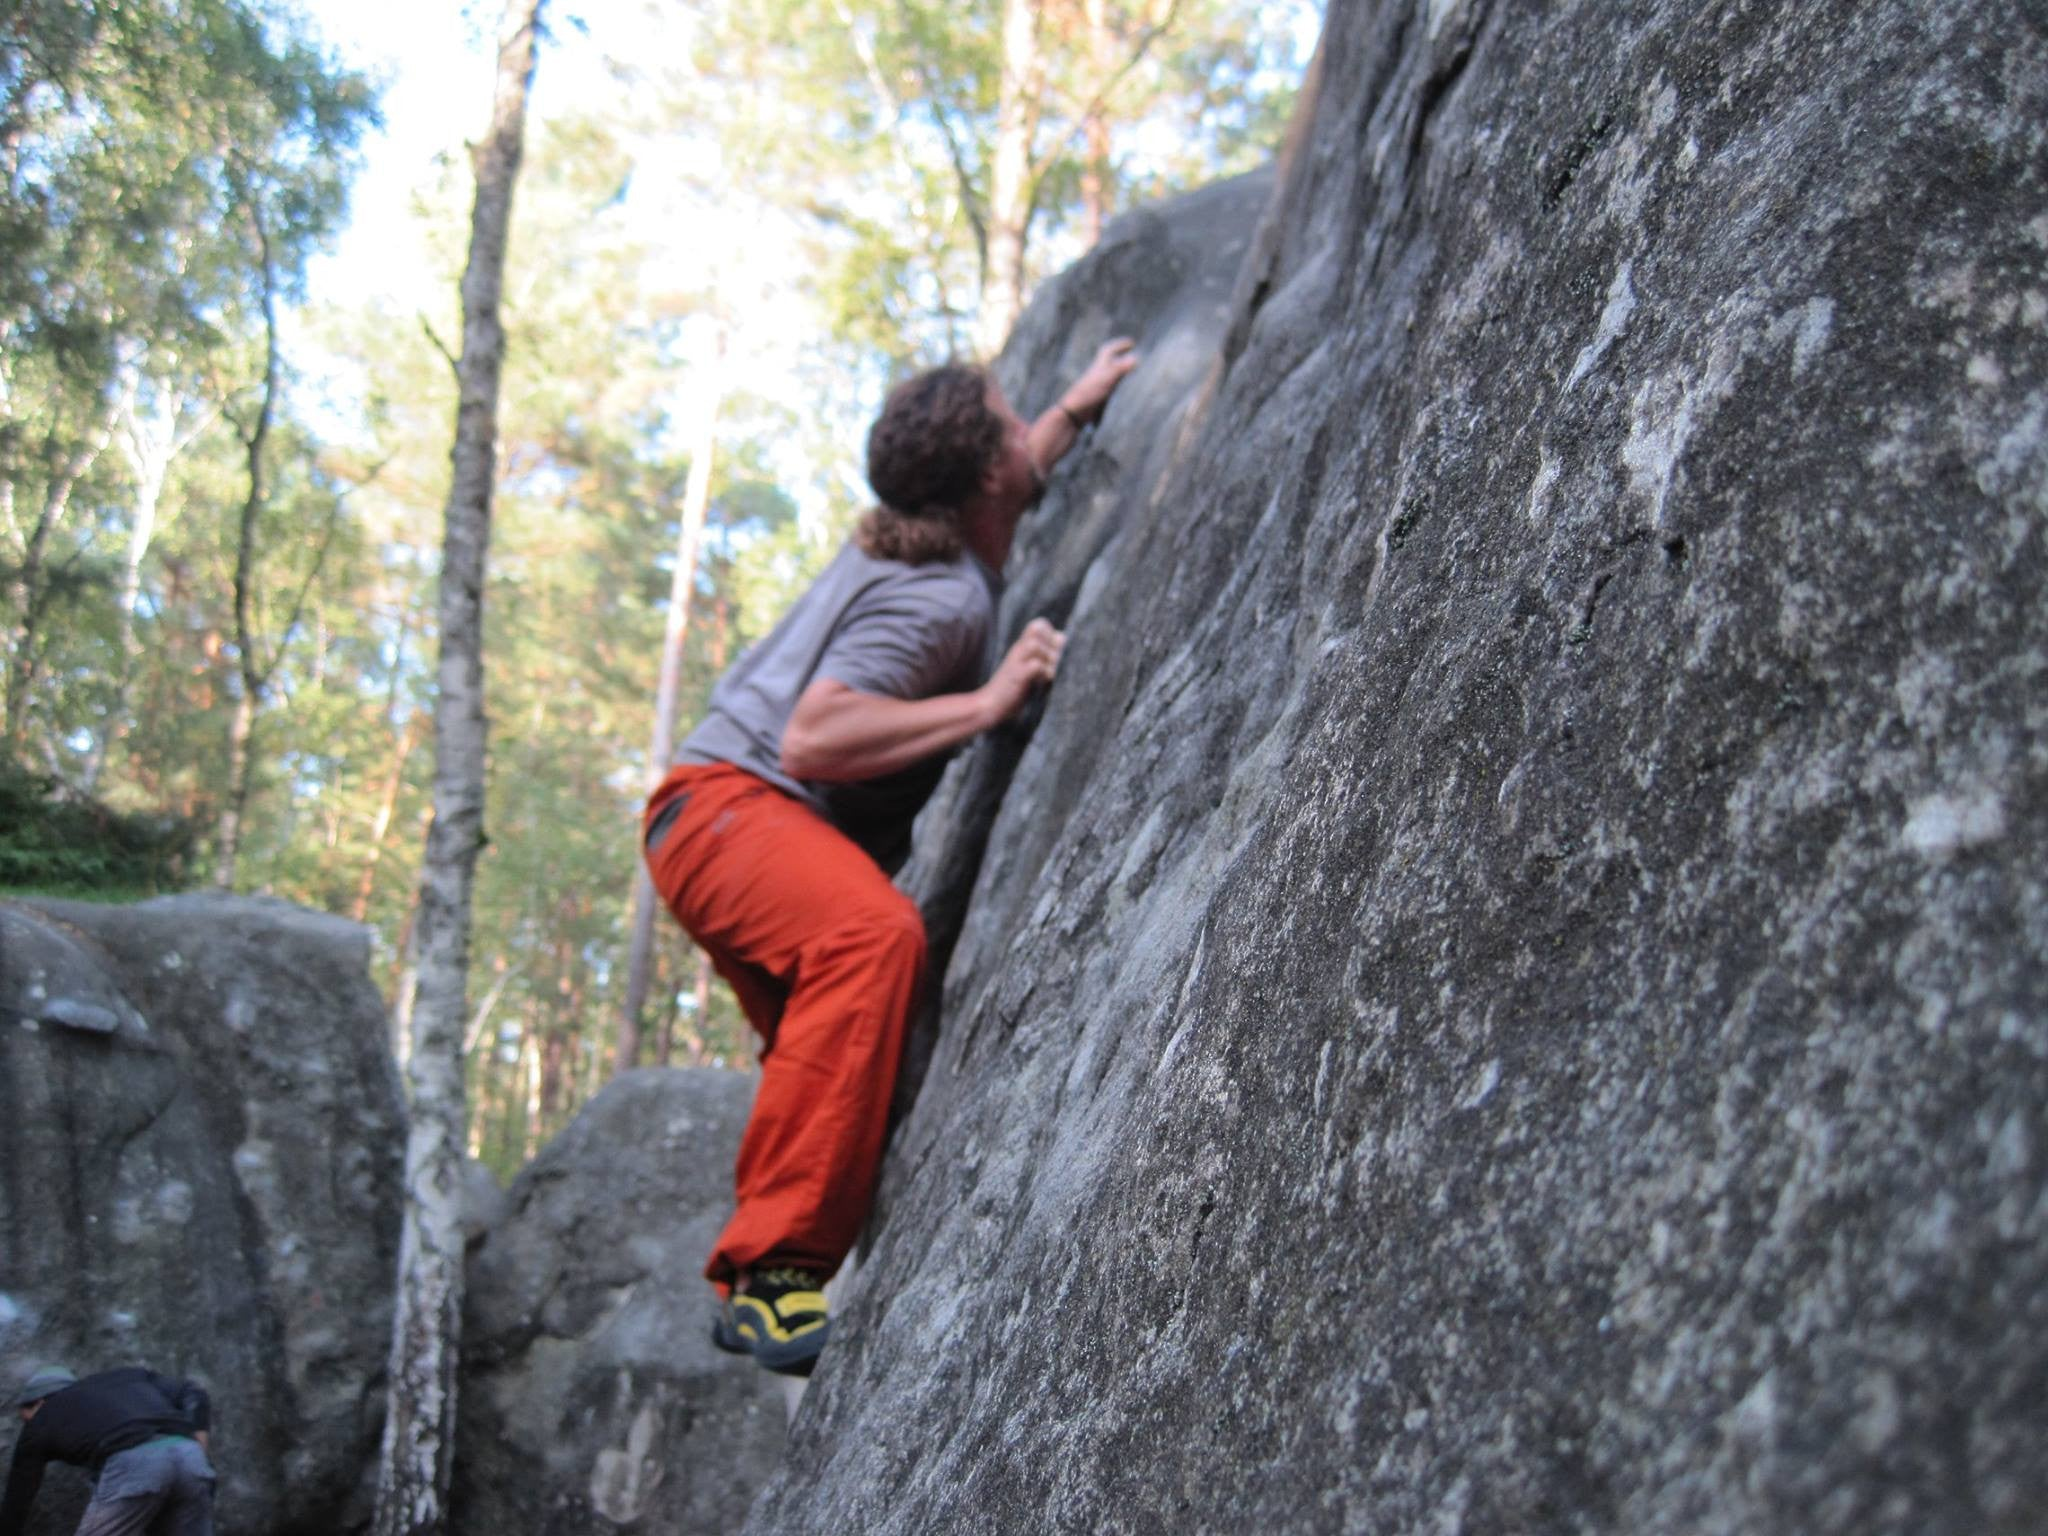 Pongoose founder Rob Rendall bouldering at Fontainebleau, France.